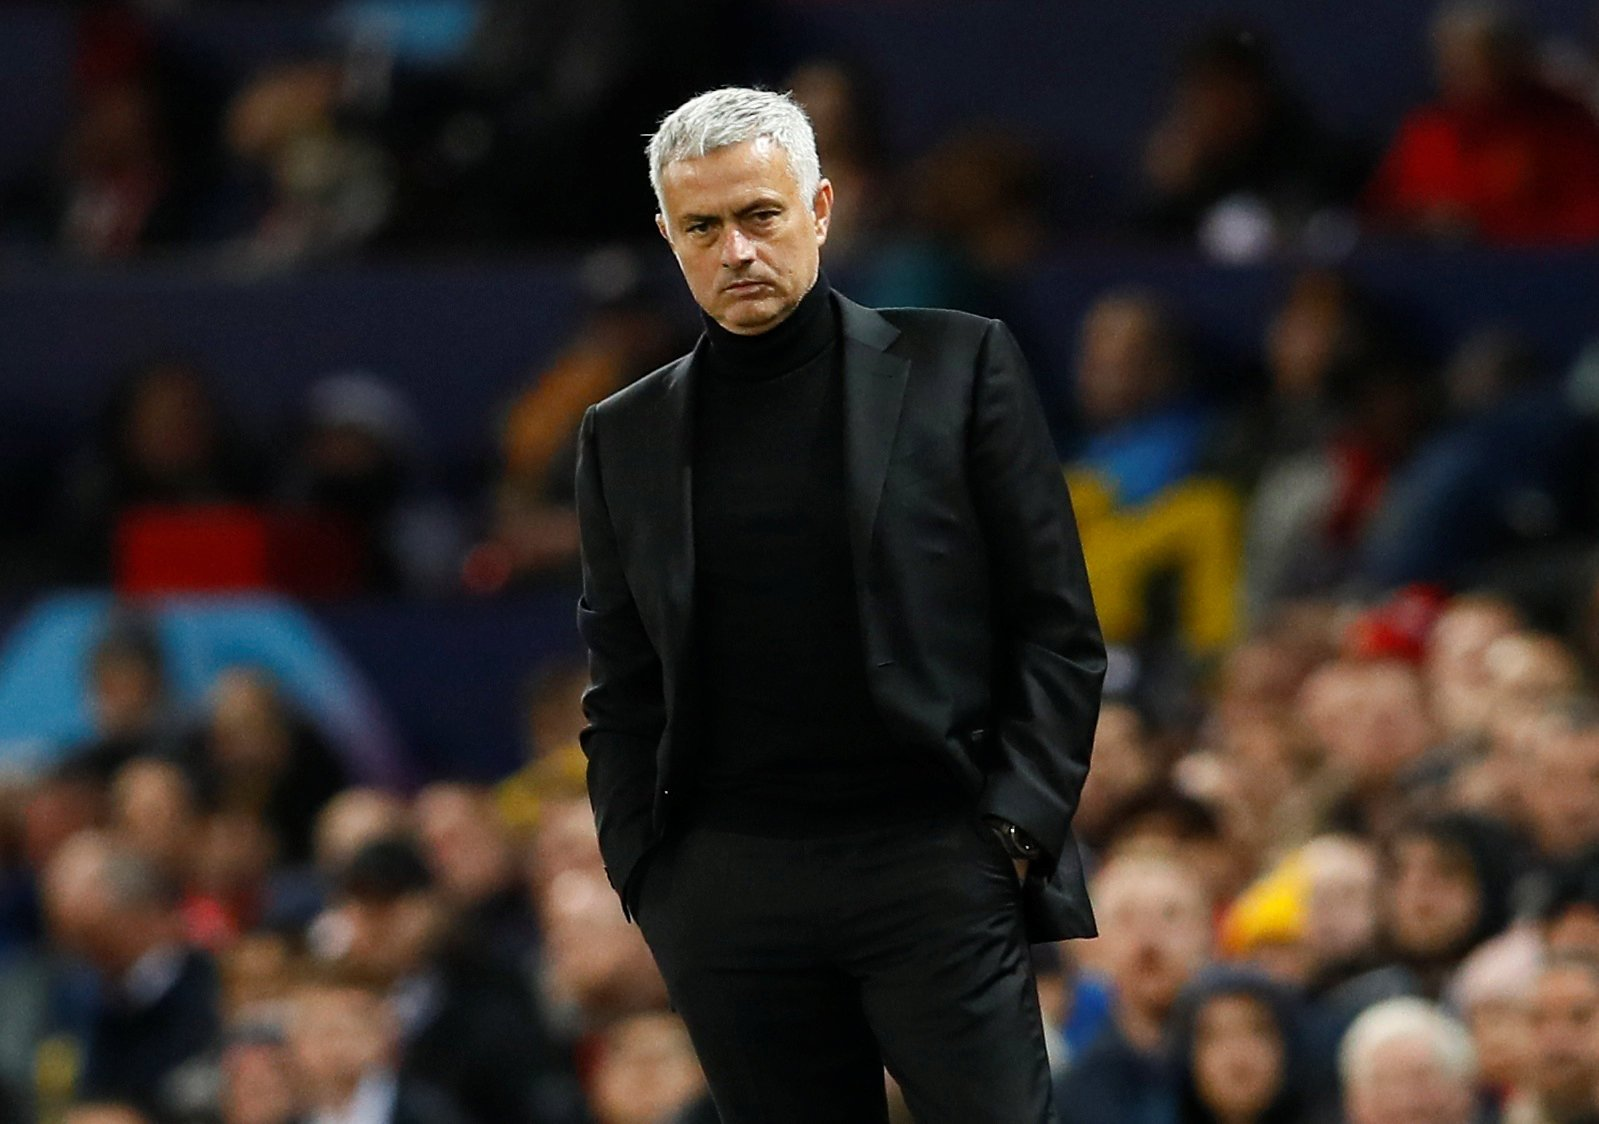 Champions League - Group Stage - Group H - Manchester United v Juventus - Jose Mourinho